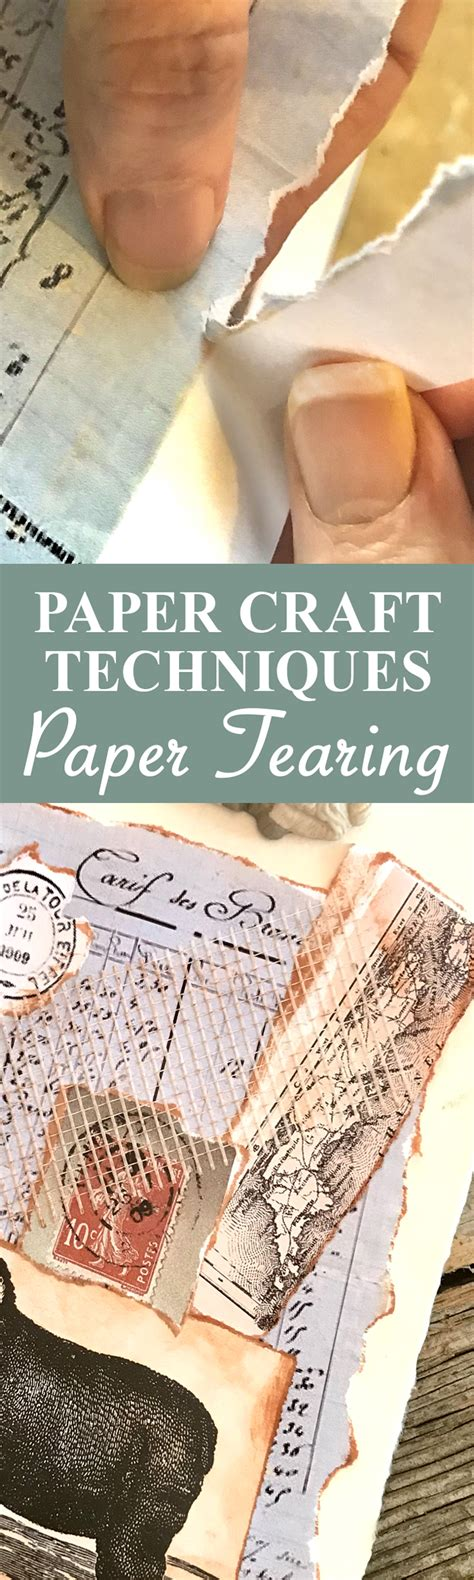 paper craft techniques paper tearing  graphics fairy